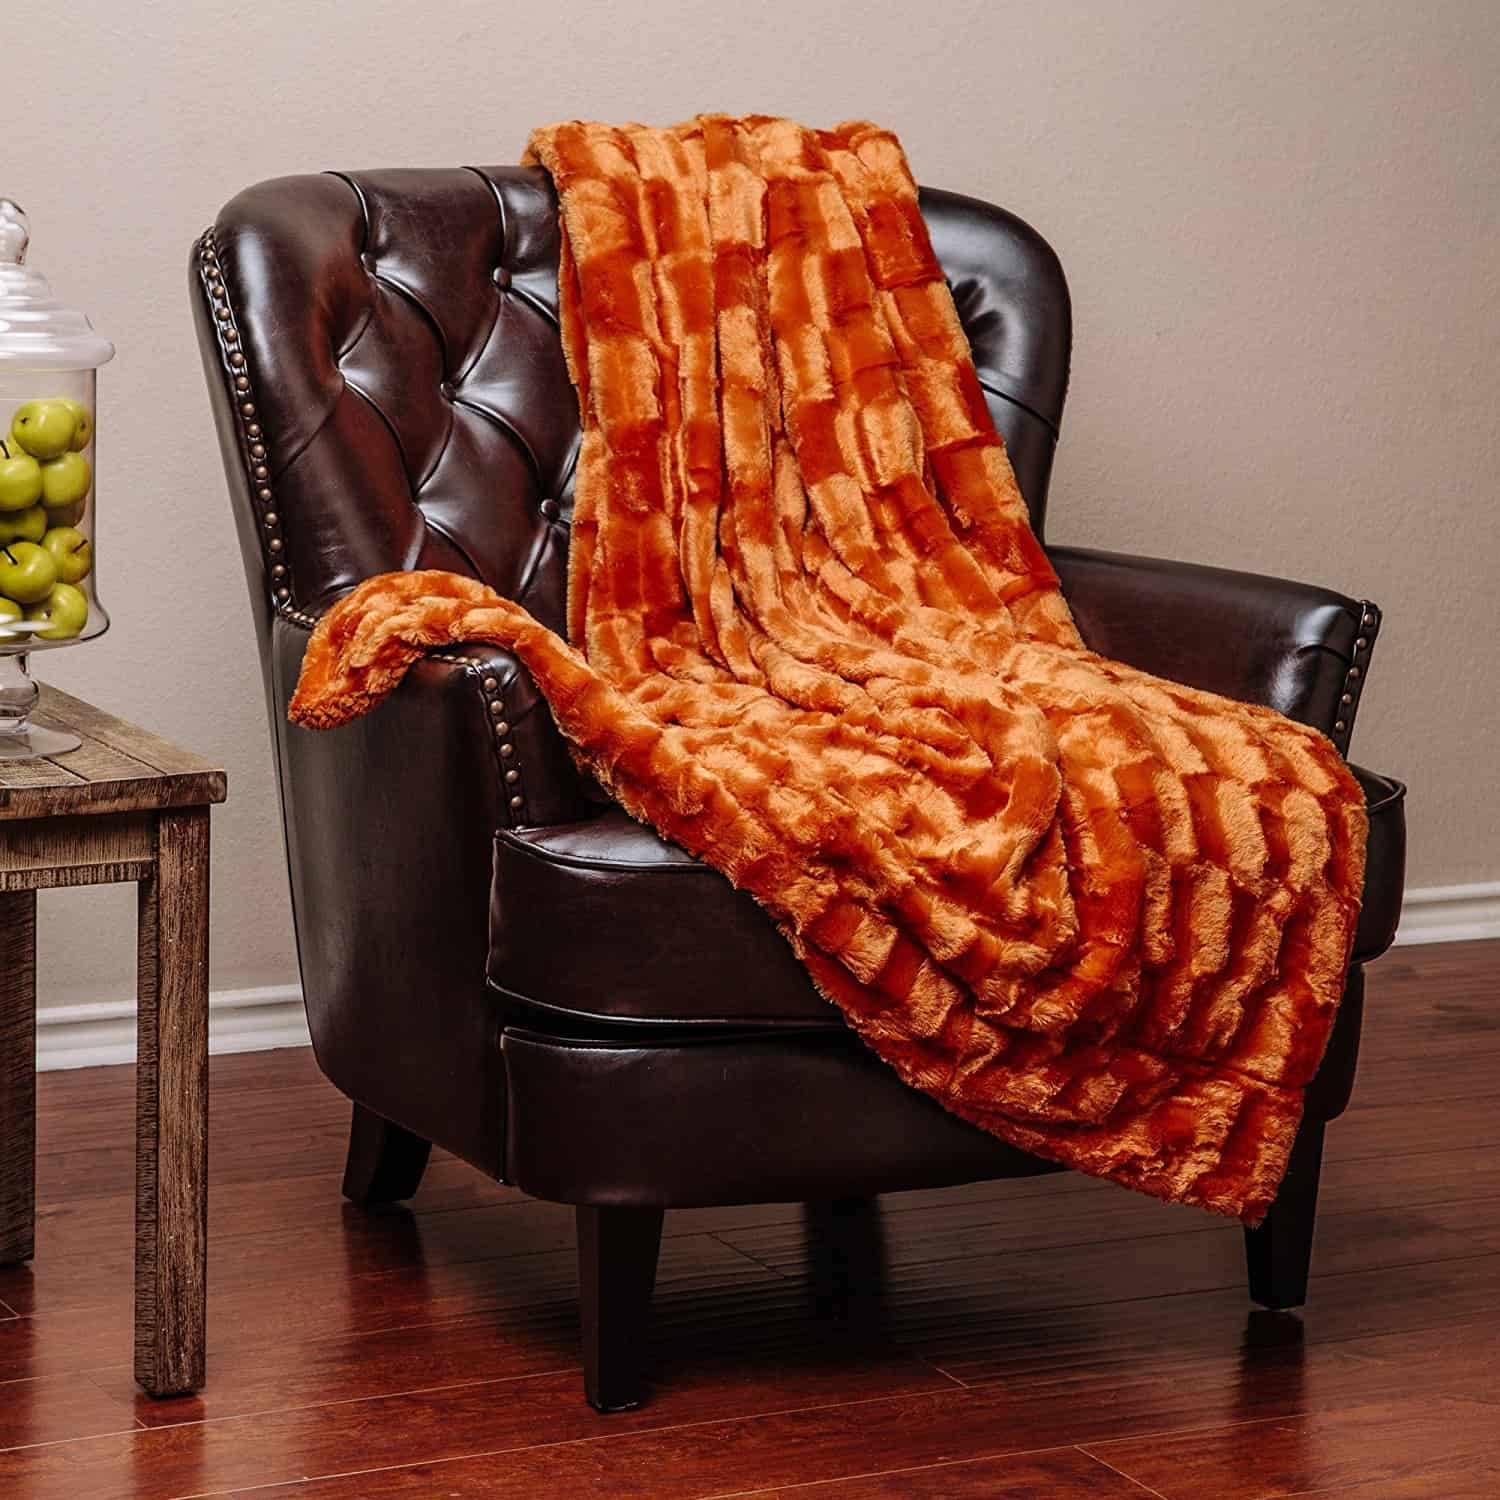 sherpa dish chair game amazon orange fur throw blanket duct tape and denim